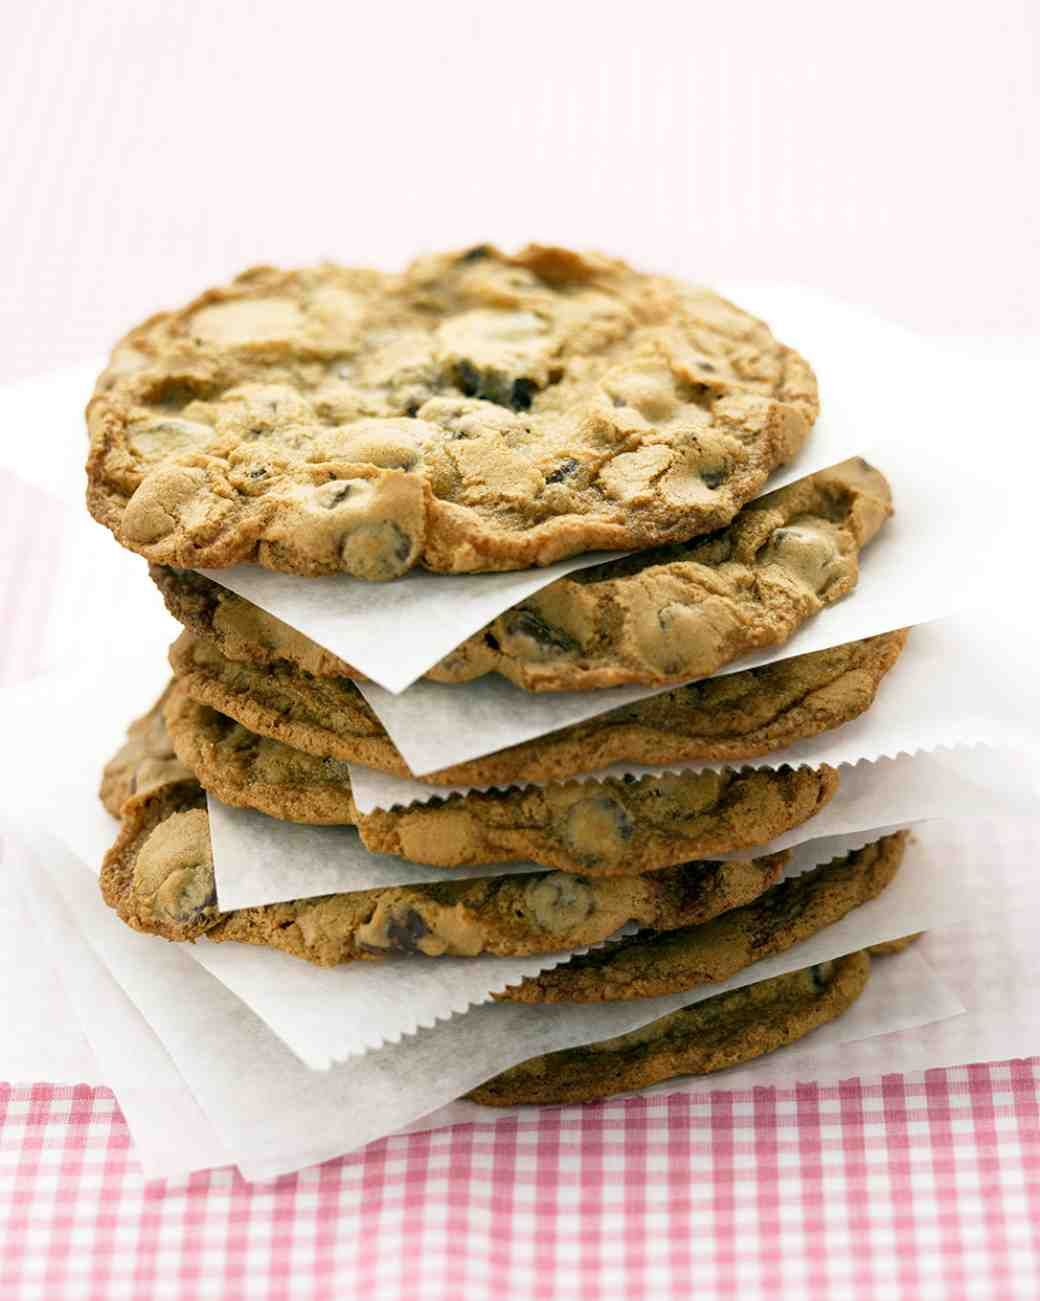 to make Giant Chocolate Chip Cookies, use 1/4 cup dough for each cookie.